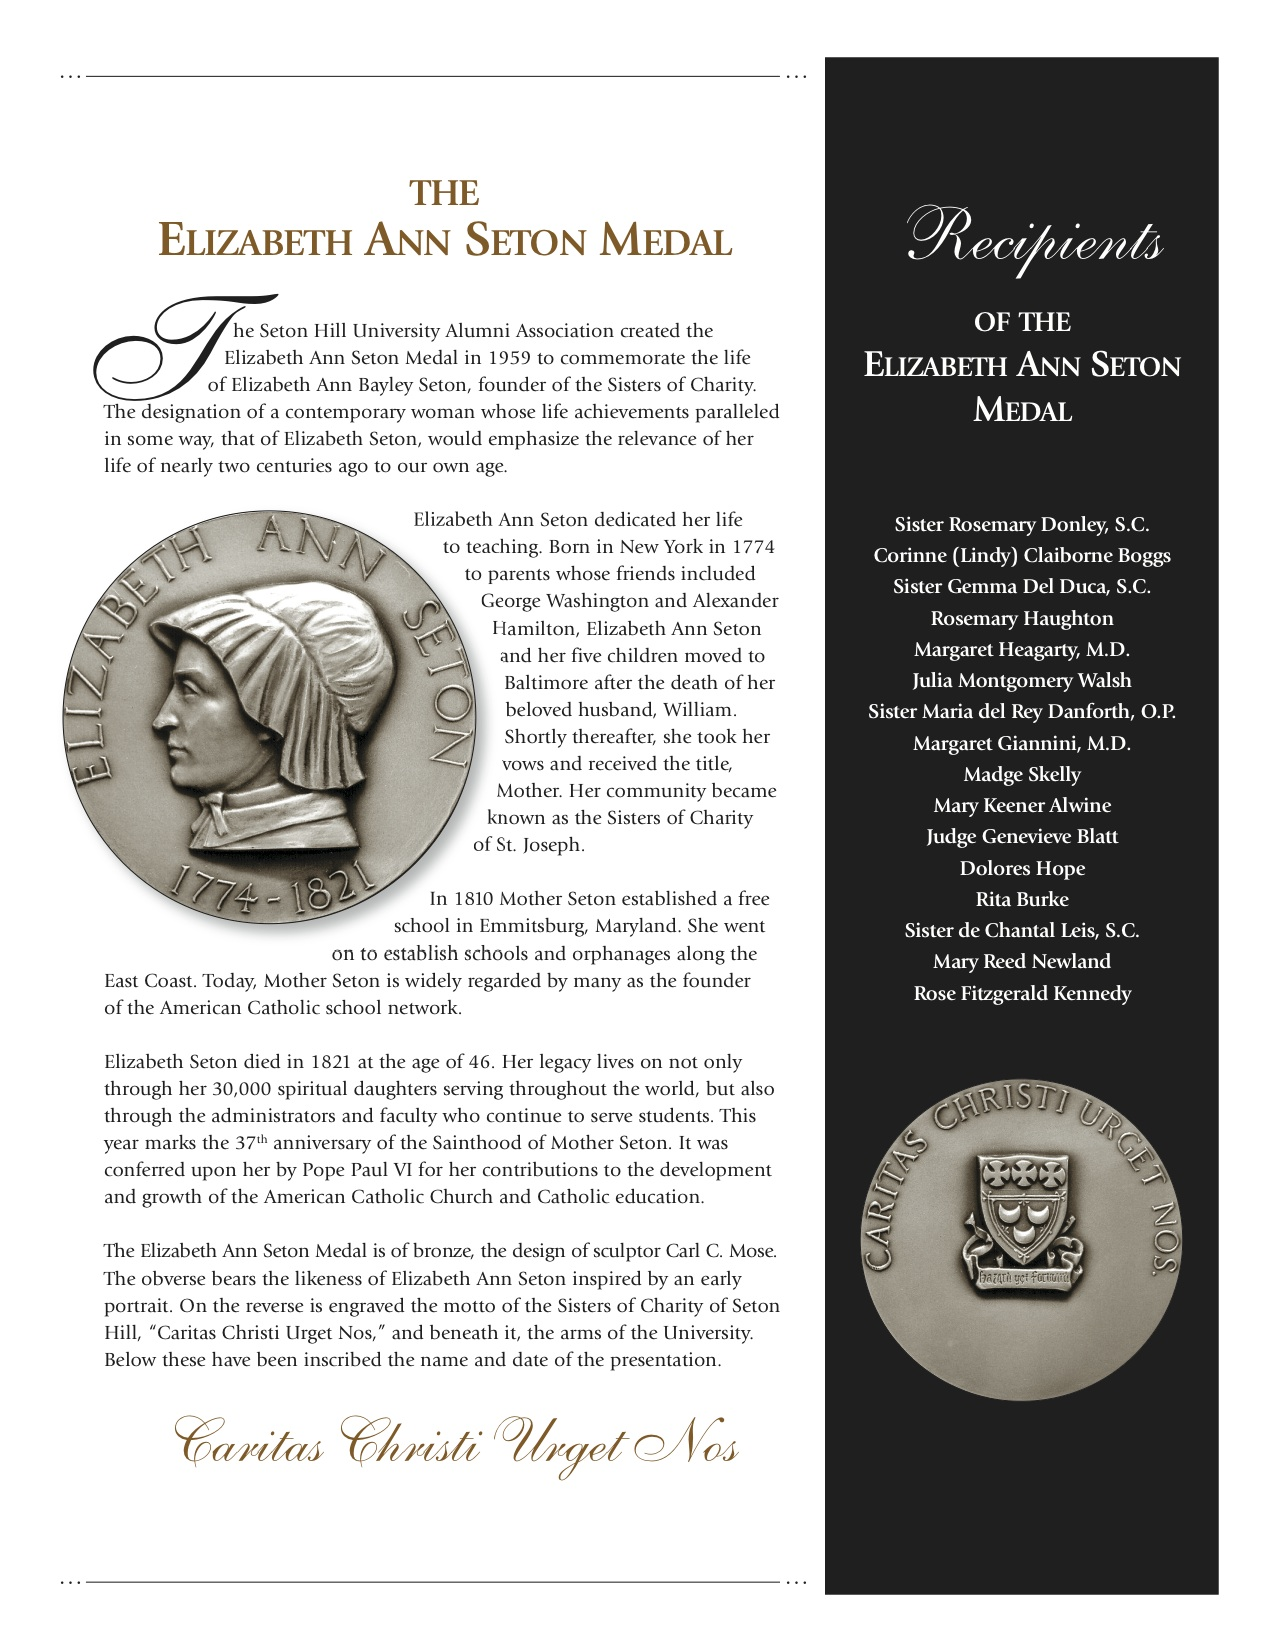 Elizabeth Ann Seton Medal description